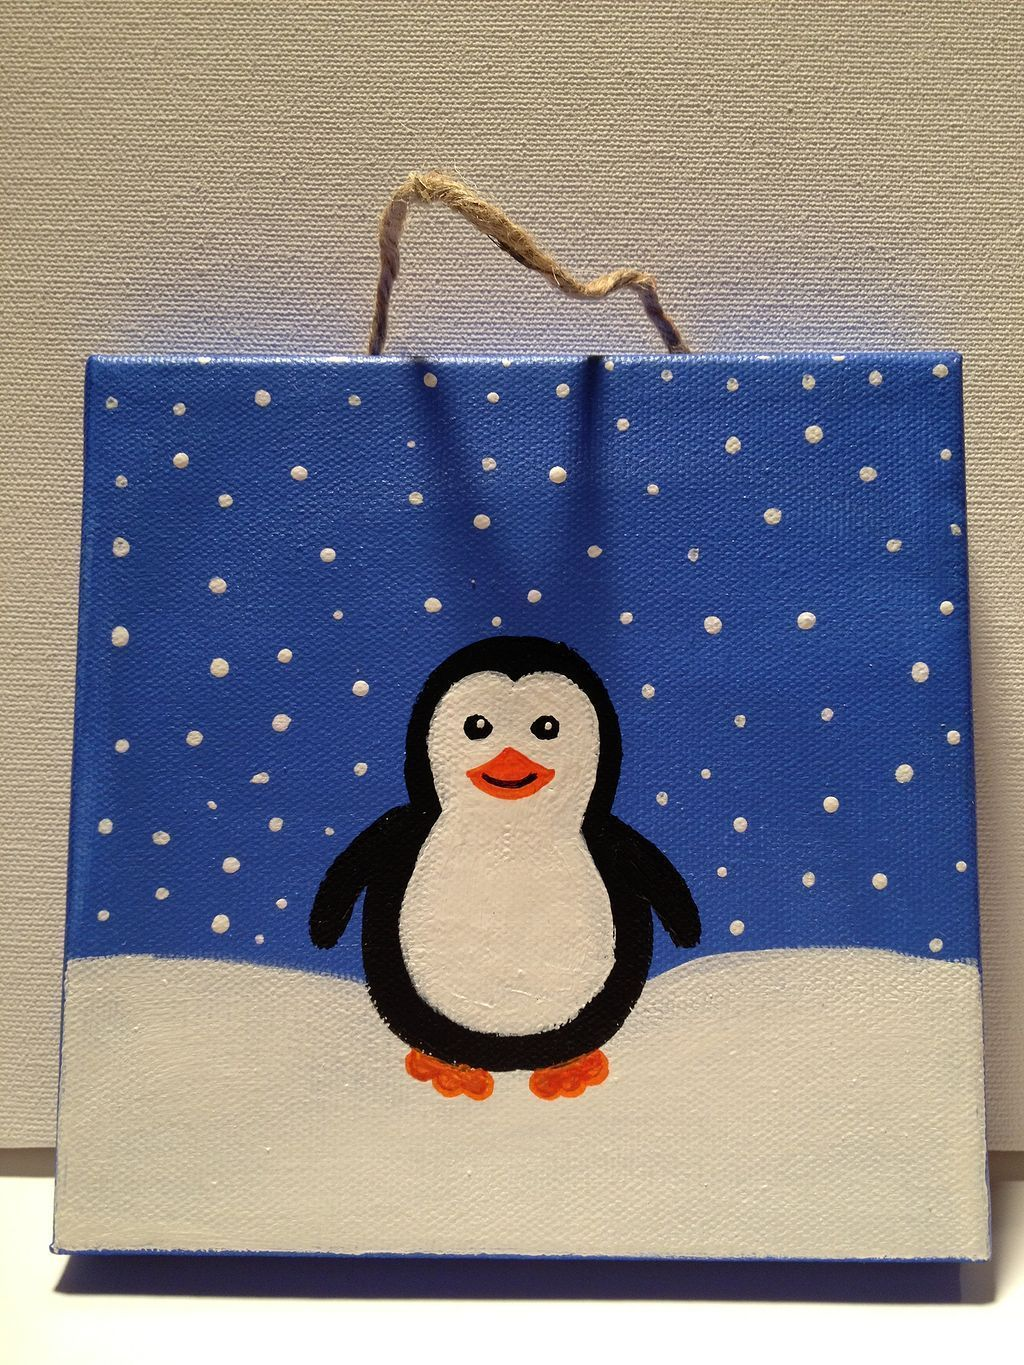 Christmas Paintings On Canvas Easy Ideas In Home 31 images